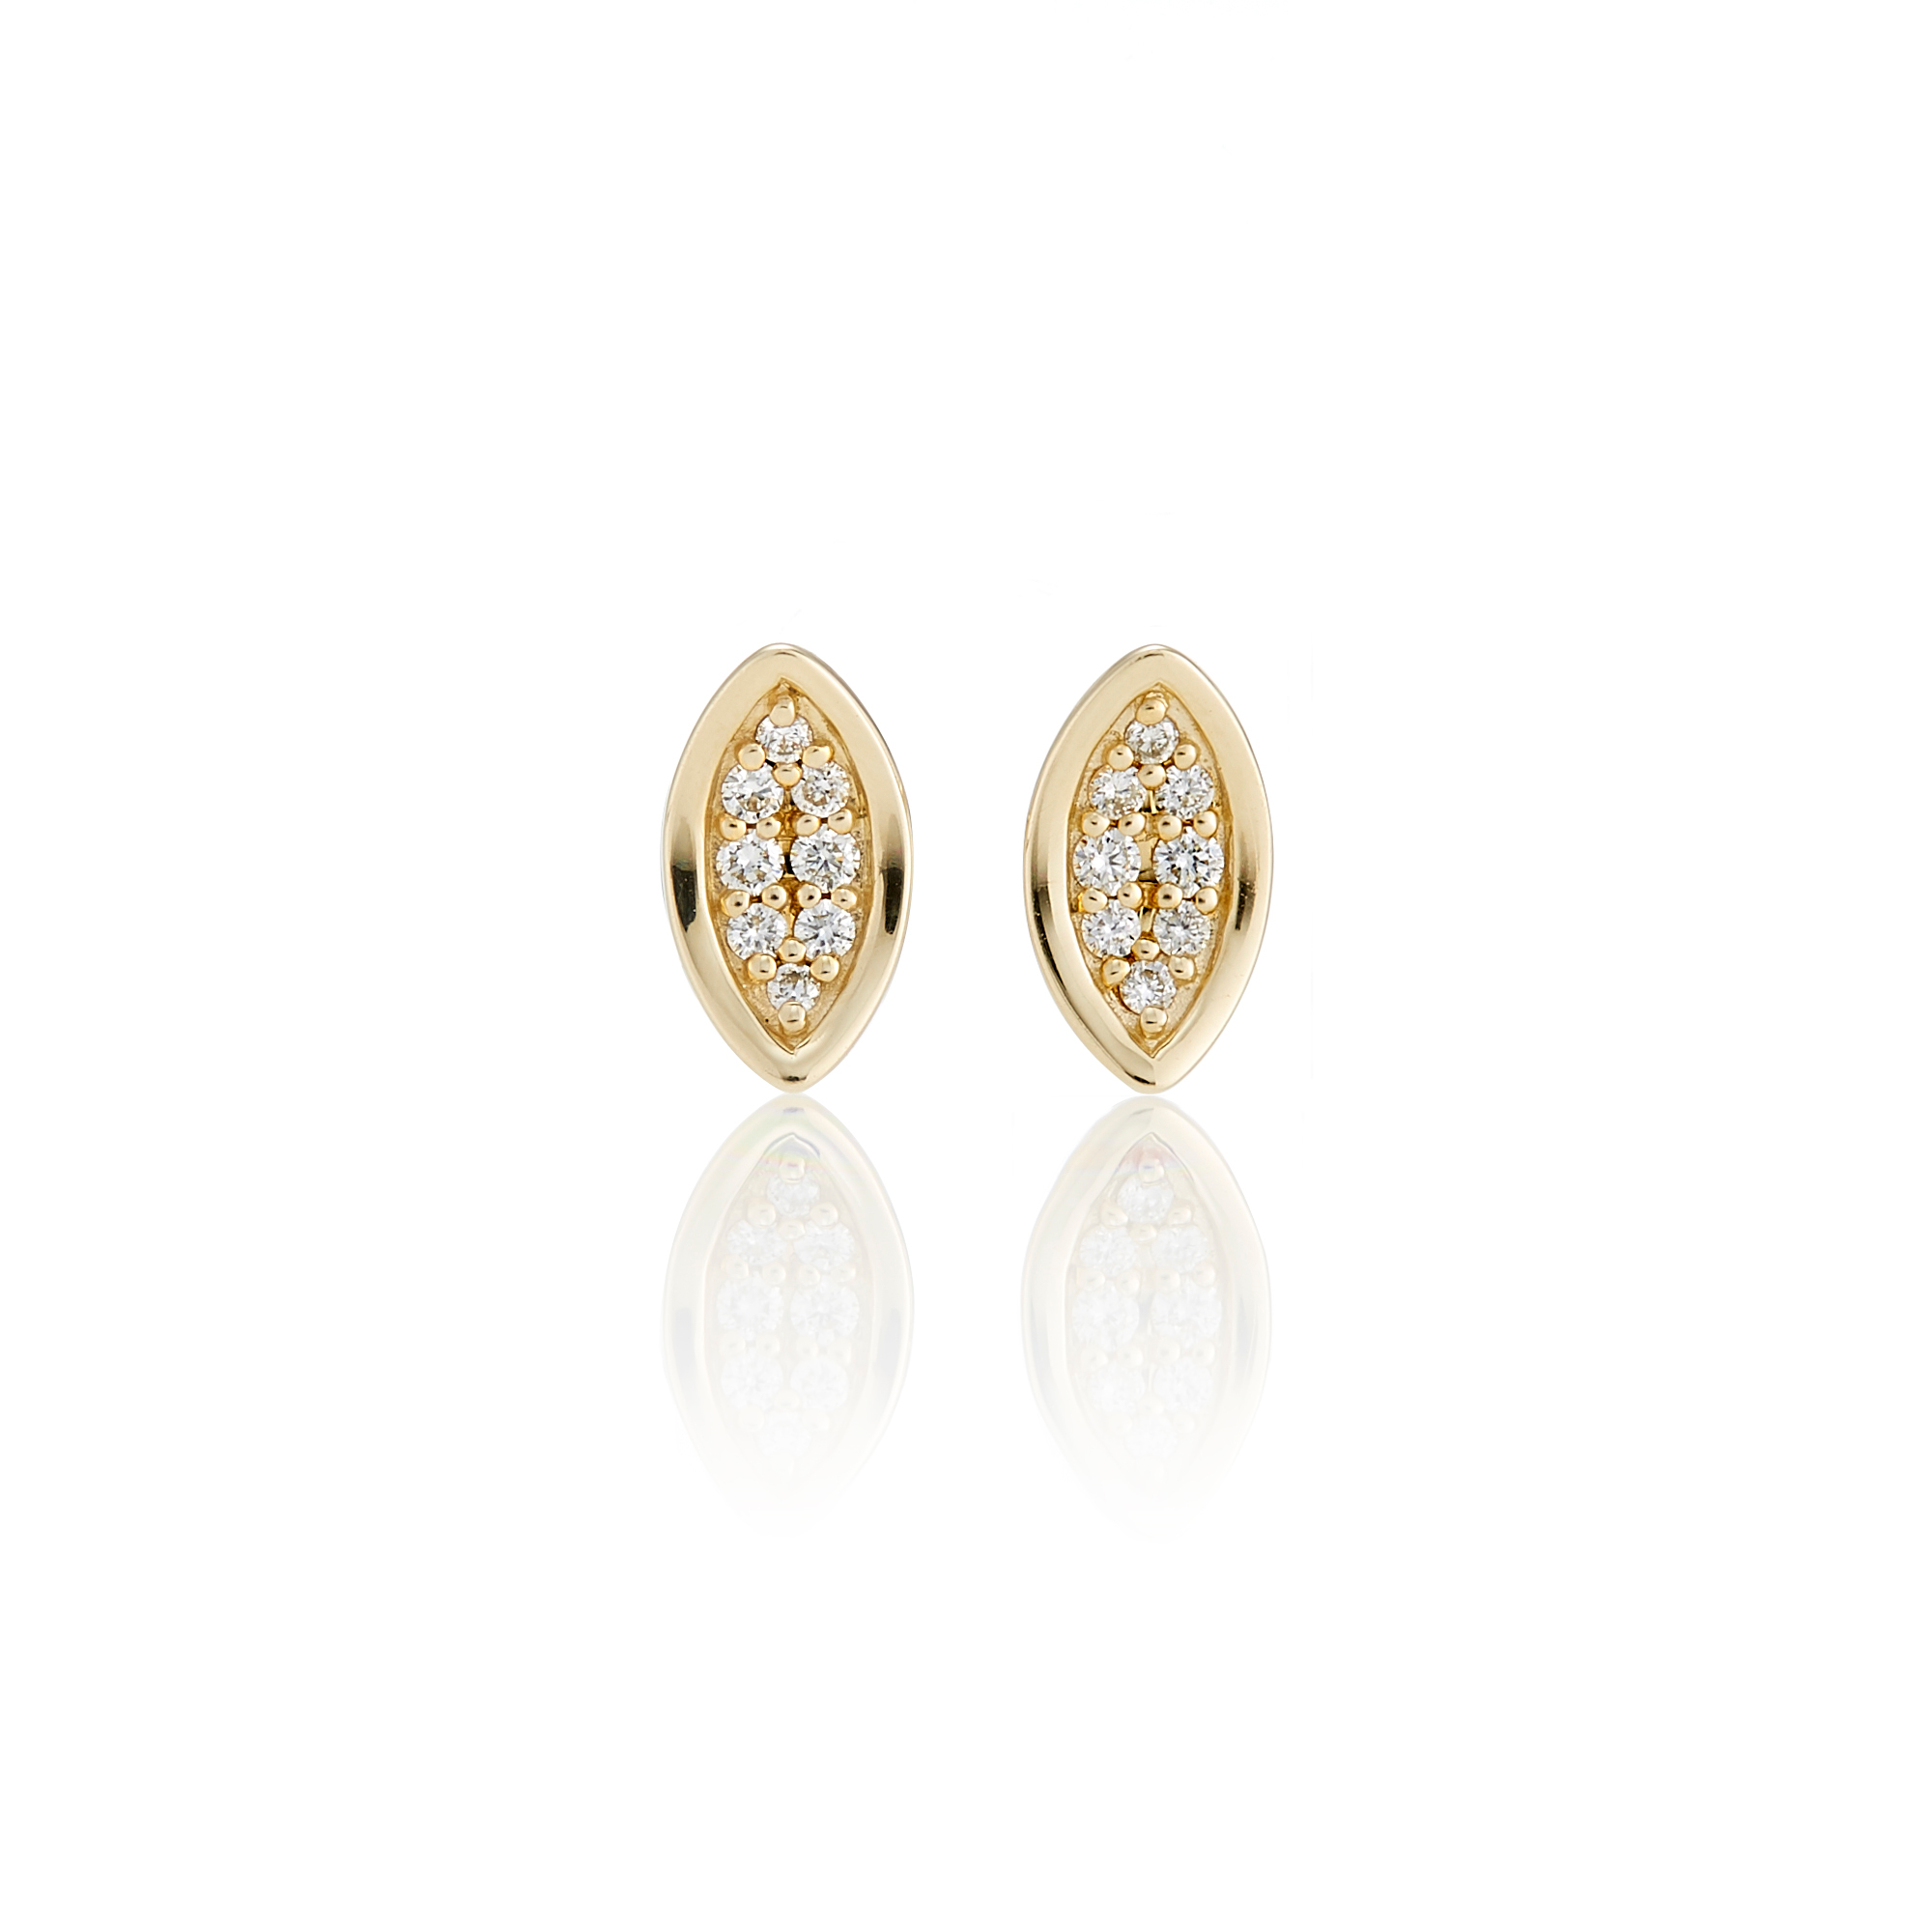 Gump's Concave Gold Diamond Marquise Stud Earrings